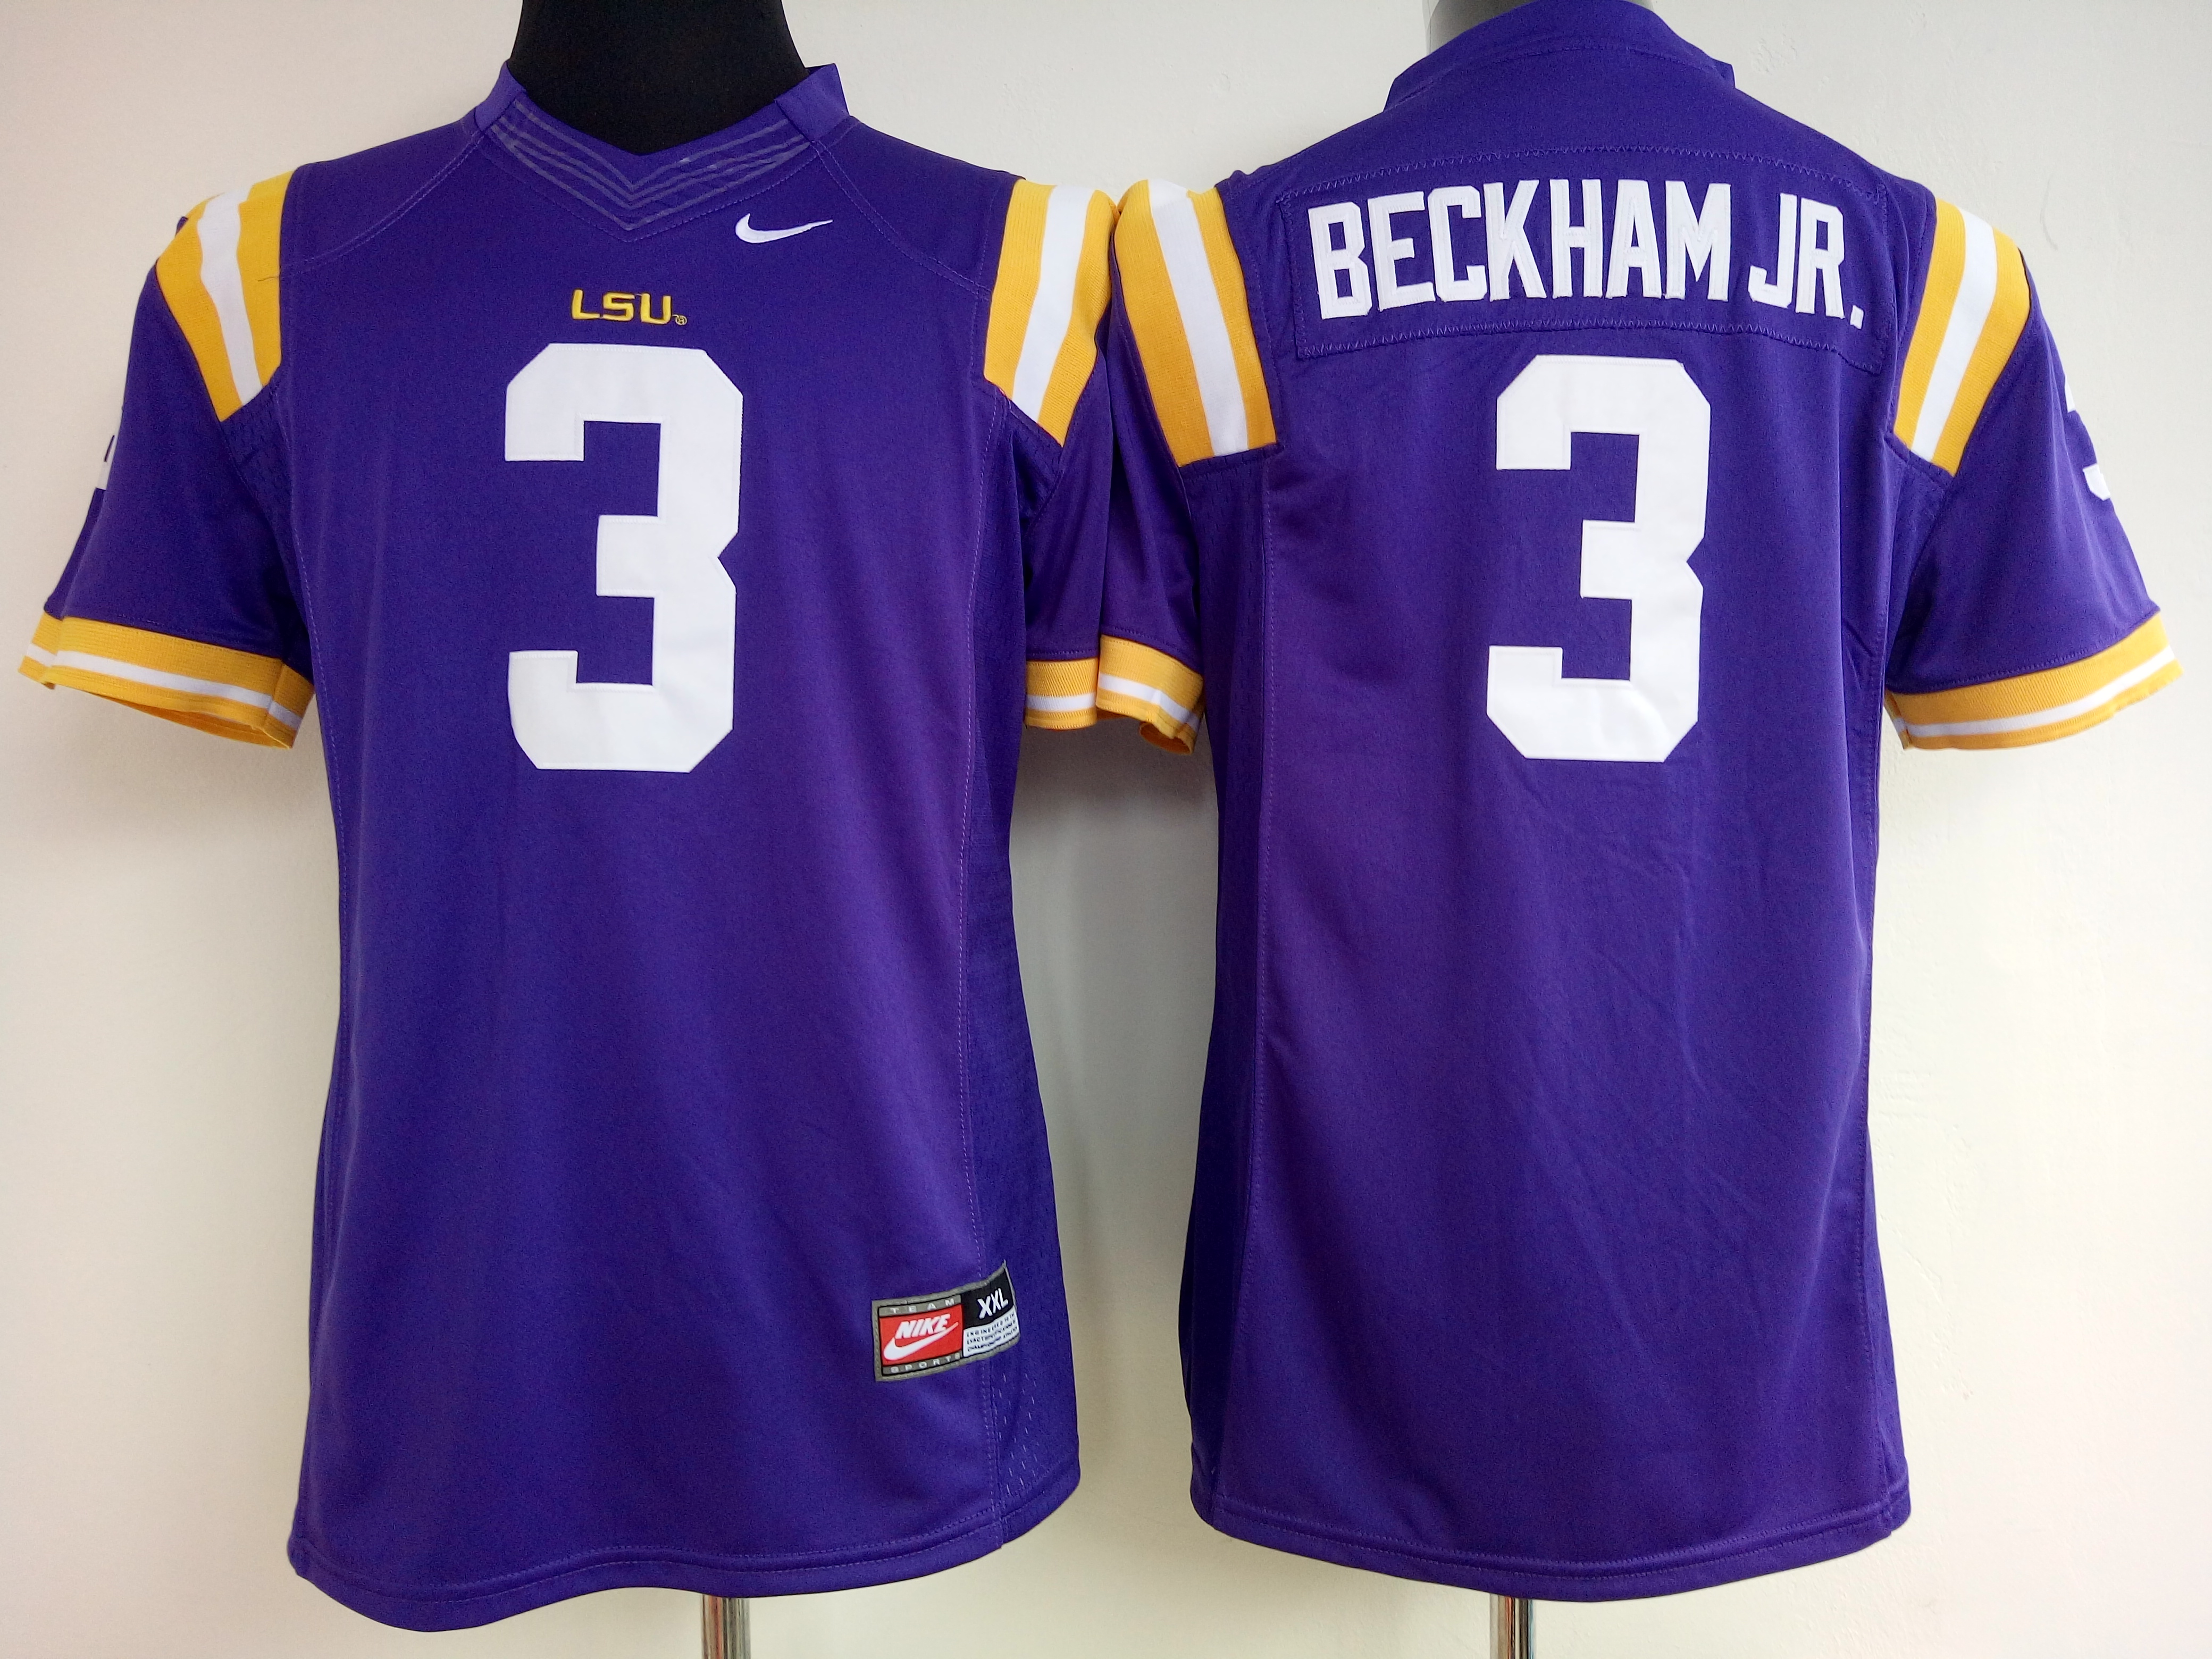 NCAA Womens LSU Tigers Purple 3 Beckham Jr jerseys